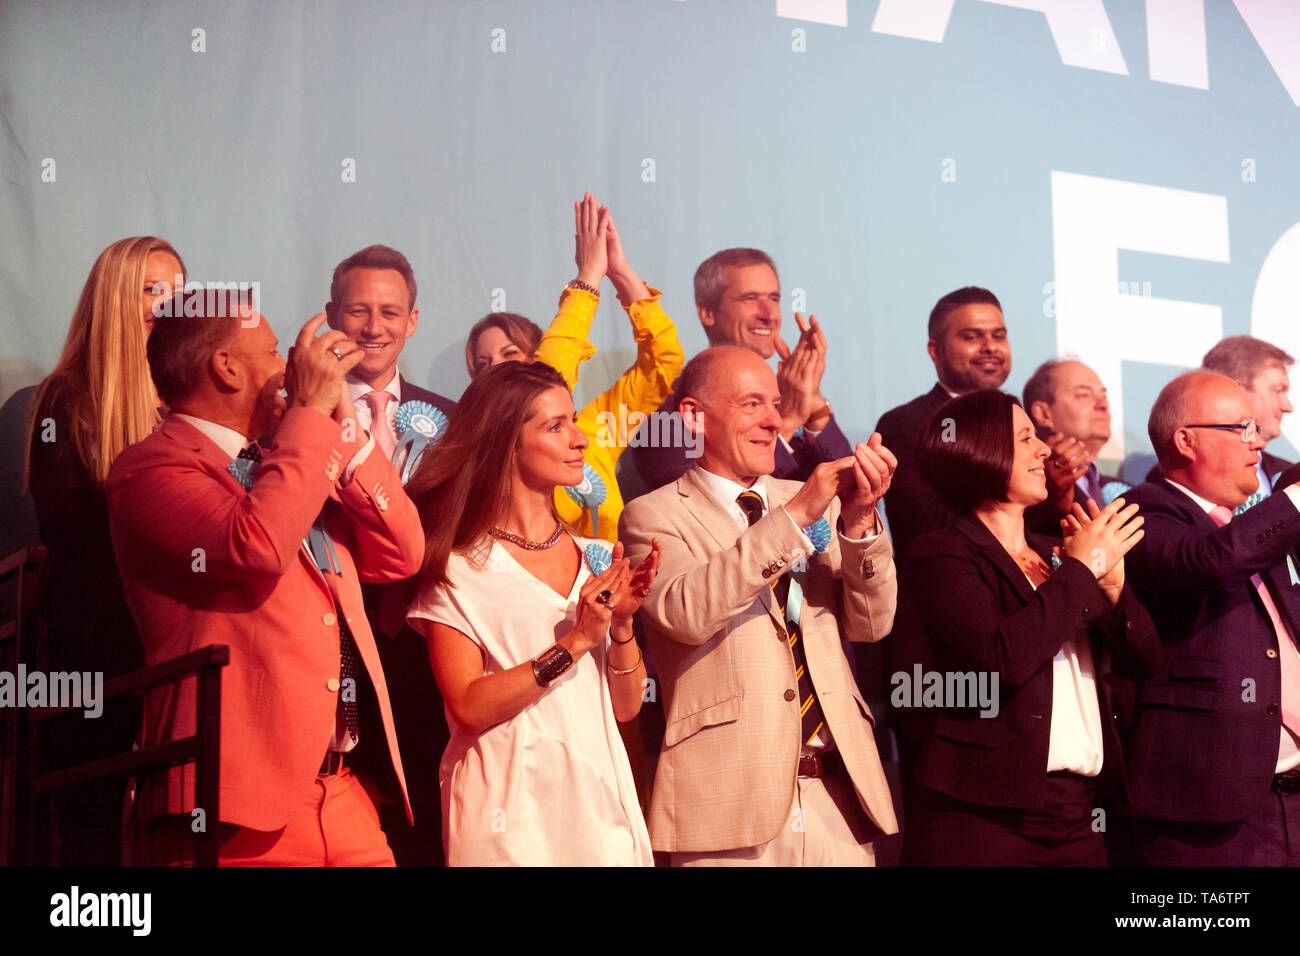 Brexit MEP Candidates, on stage during a Rally at Olympia, London Stock Photo